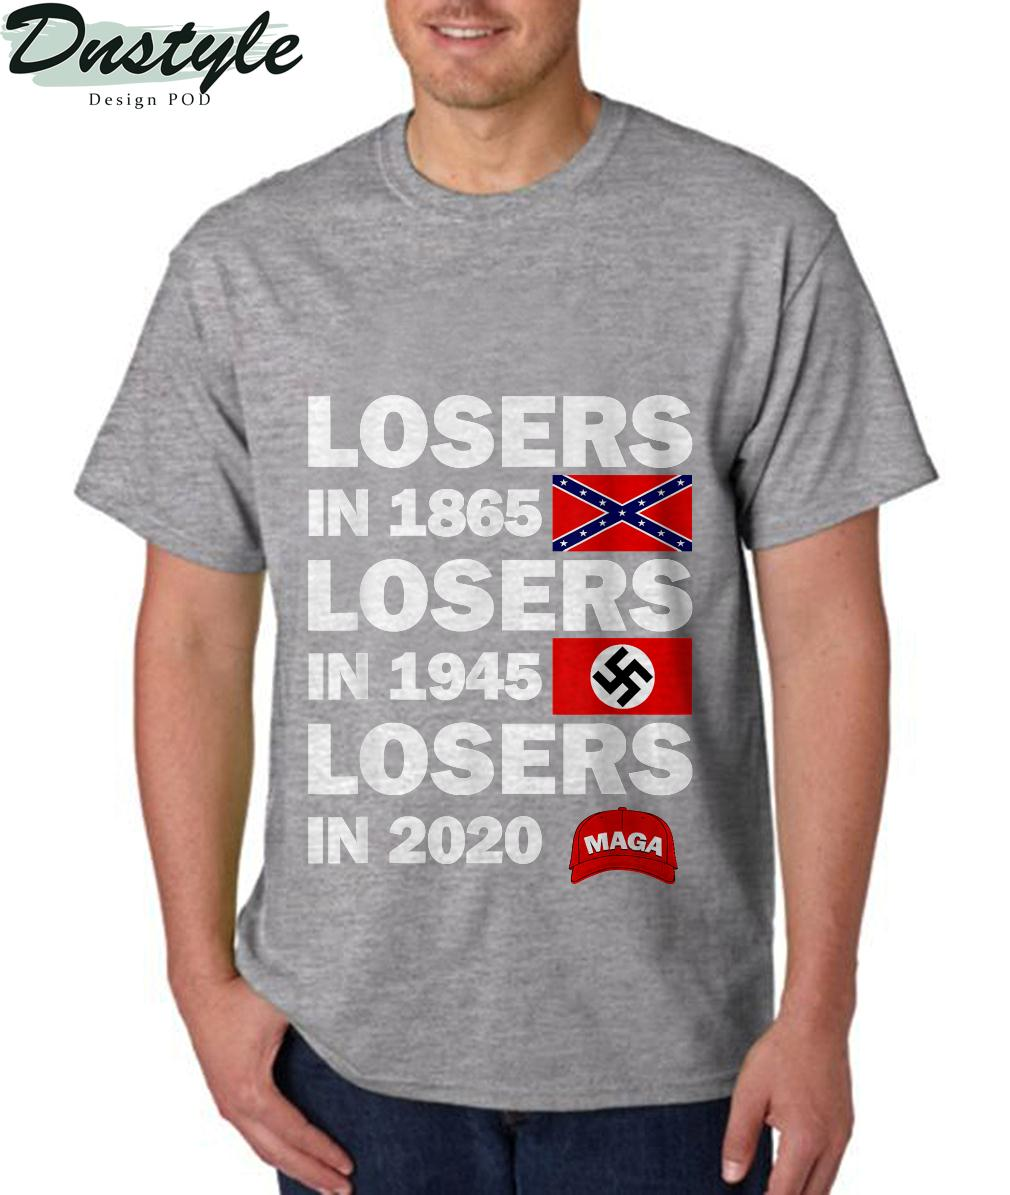 Losers in 1865 Losers in 1945 Losers in 2020 T-Shirt 3